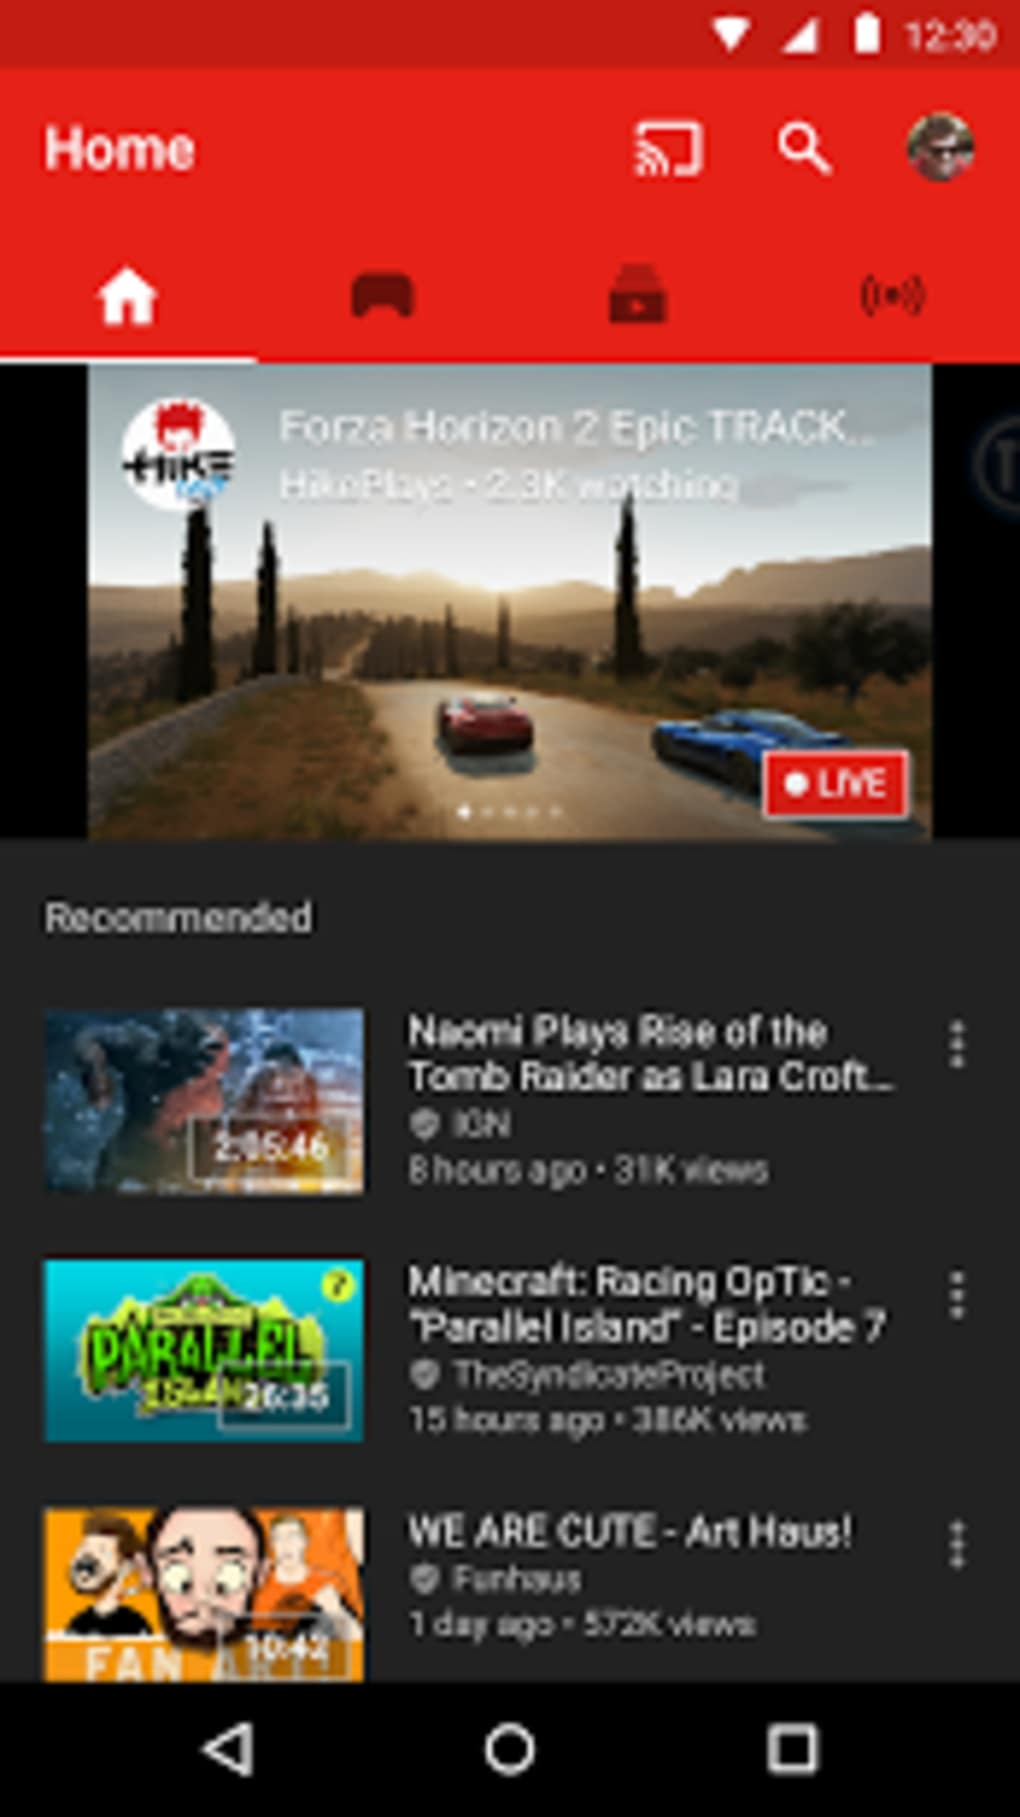 YouTube Gaming for Android - Download